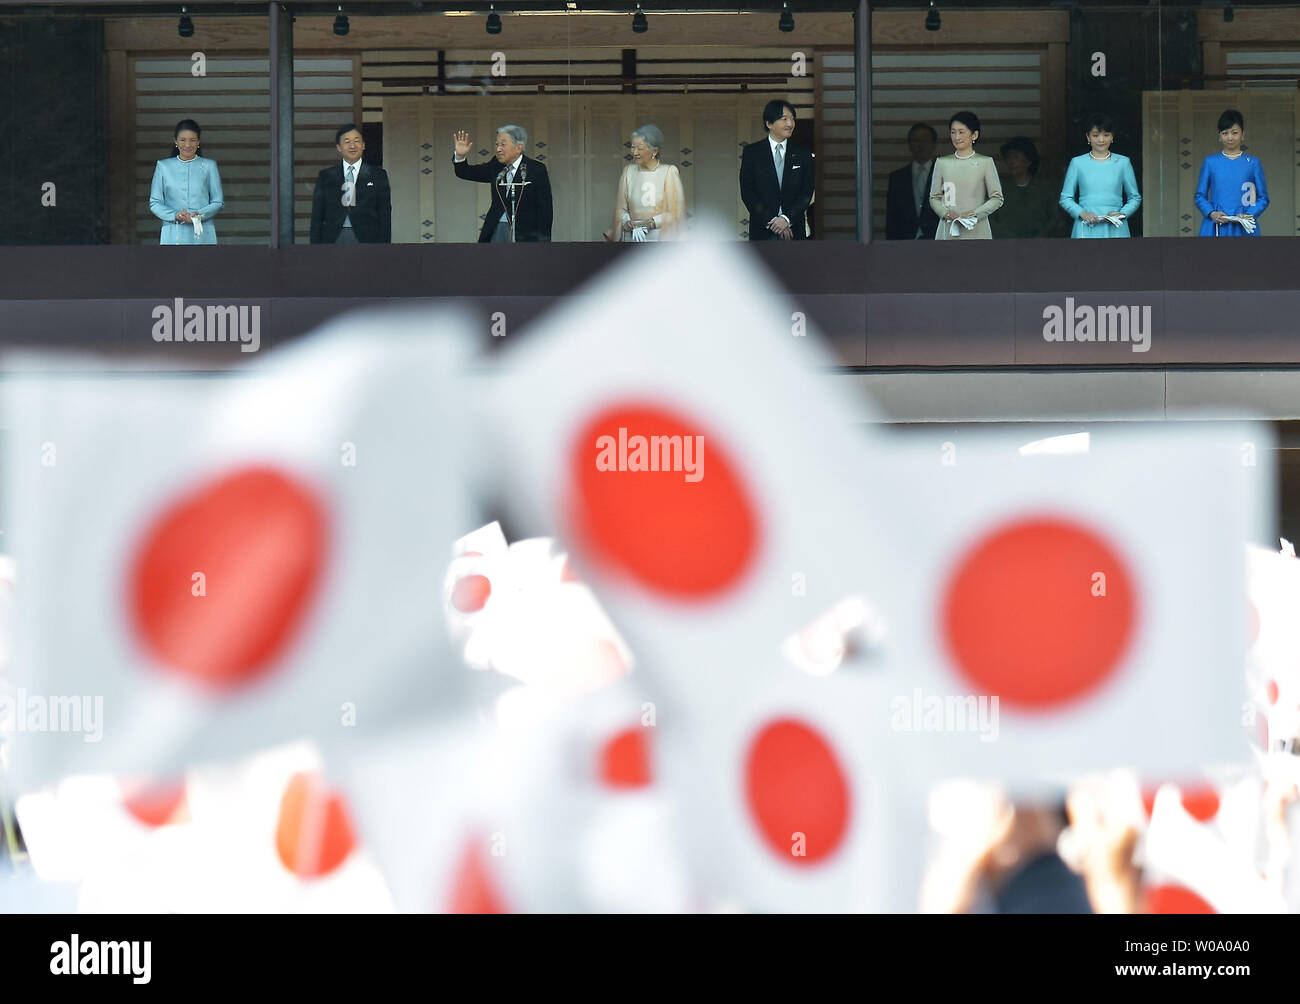 Japan's Emperor Akihito(L3) waves to well-wishers during a New Year greeting at the East Plaza, Imperial Palace in Tokyo, Japan, on January 2, 2016.     Photo by Keizo Mori/UPI - Stock Image